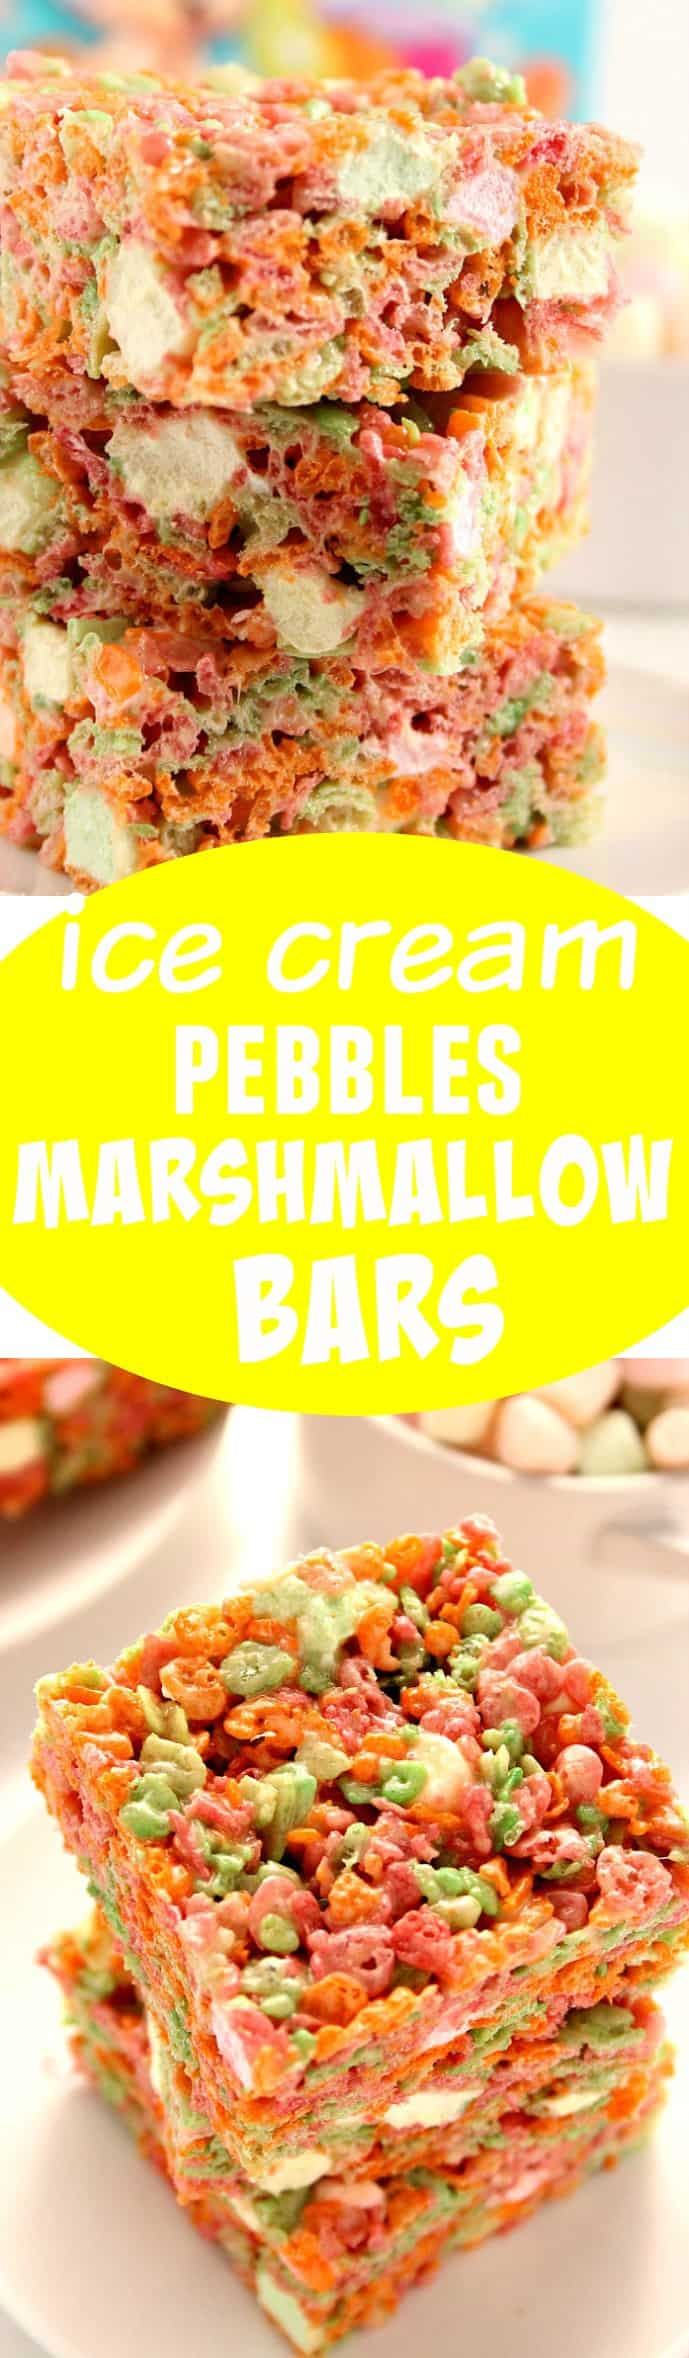 cereal bars long 2 Ice Cream Pebbles Marshmallow Cereal Bars Recipe